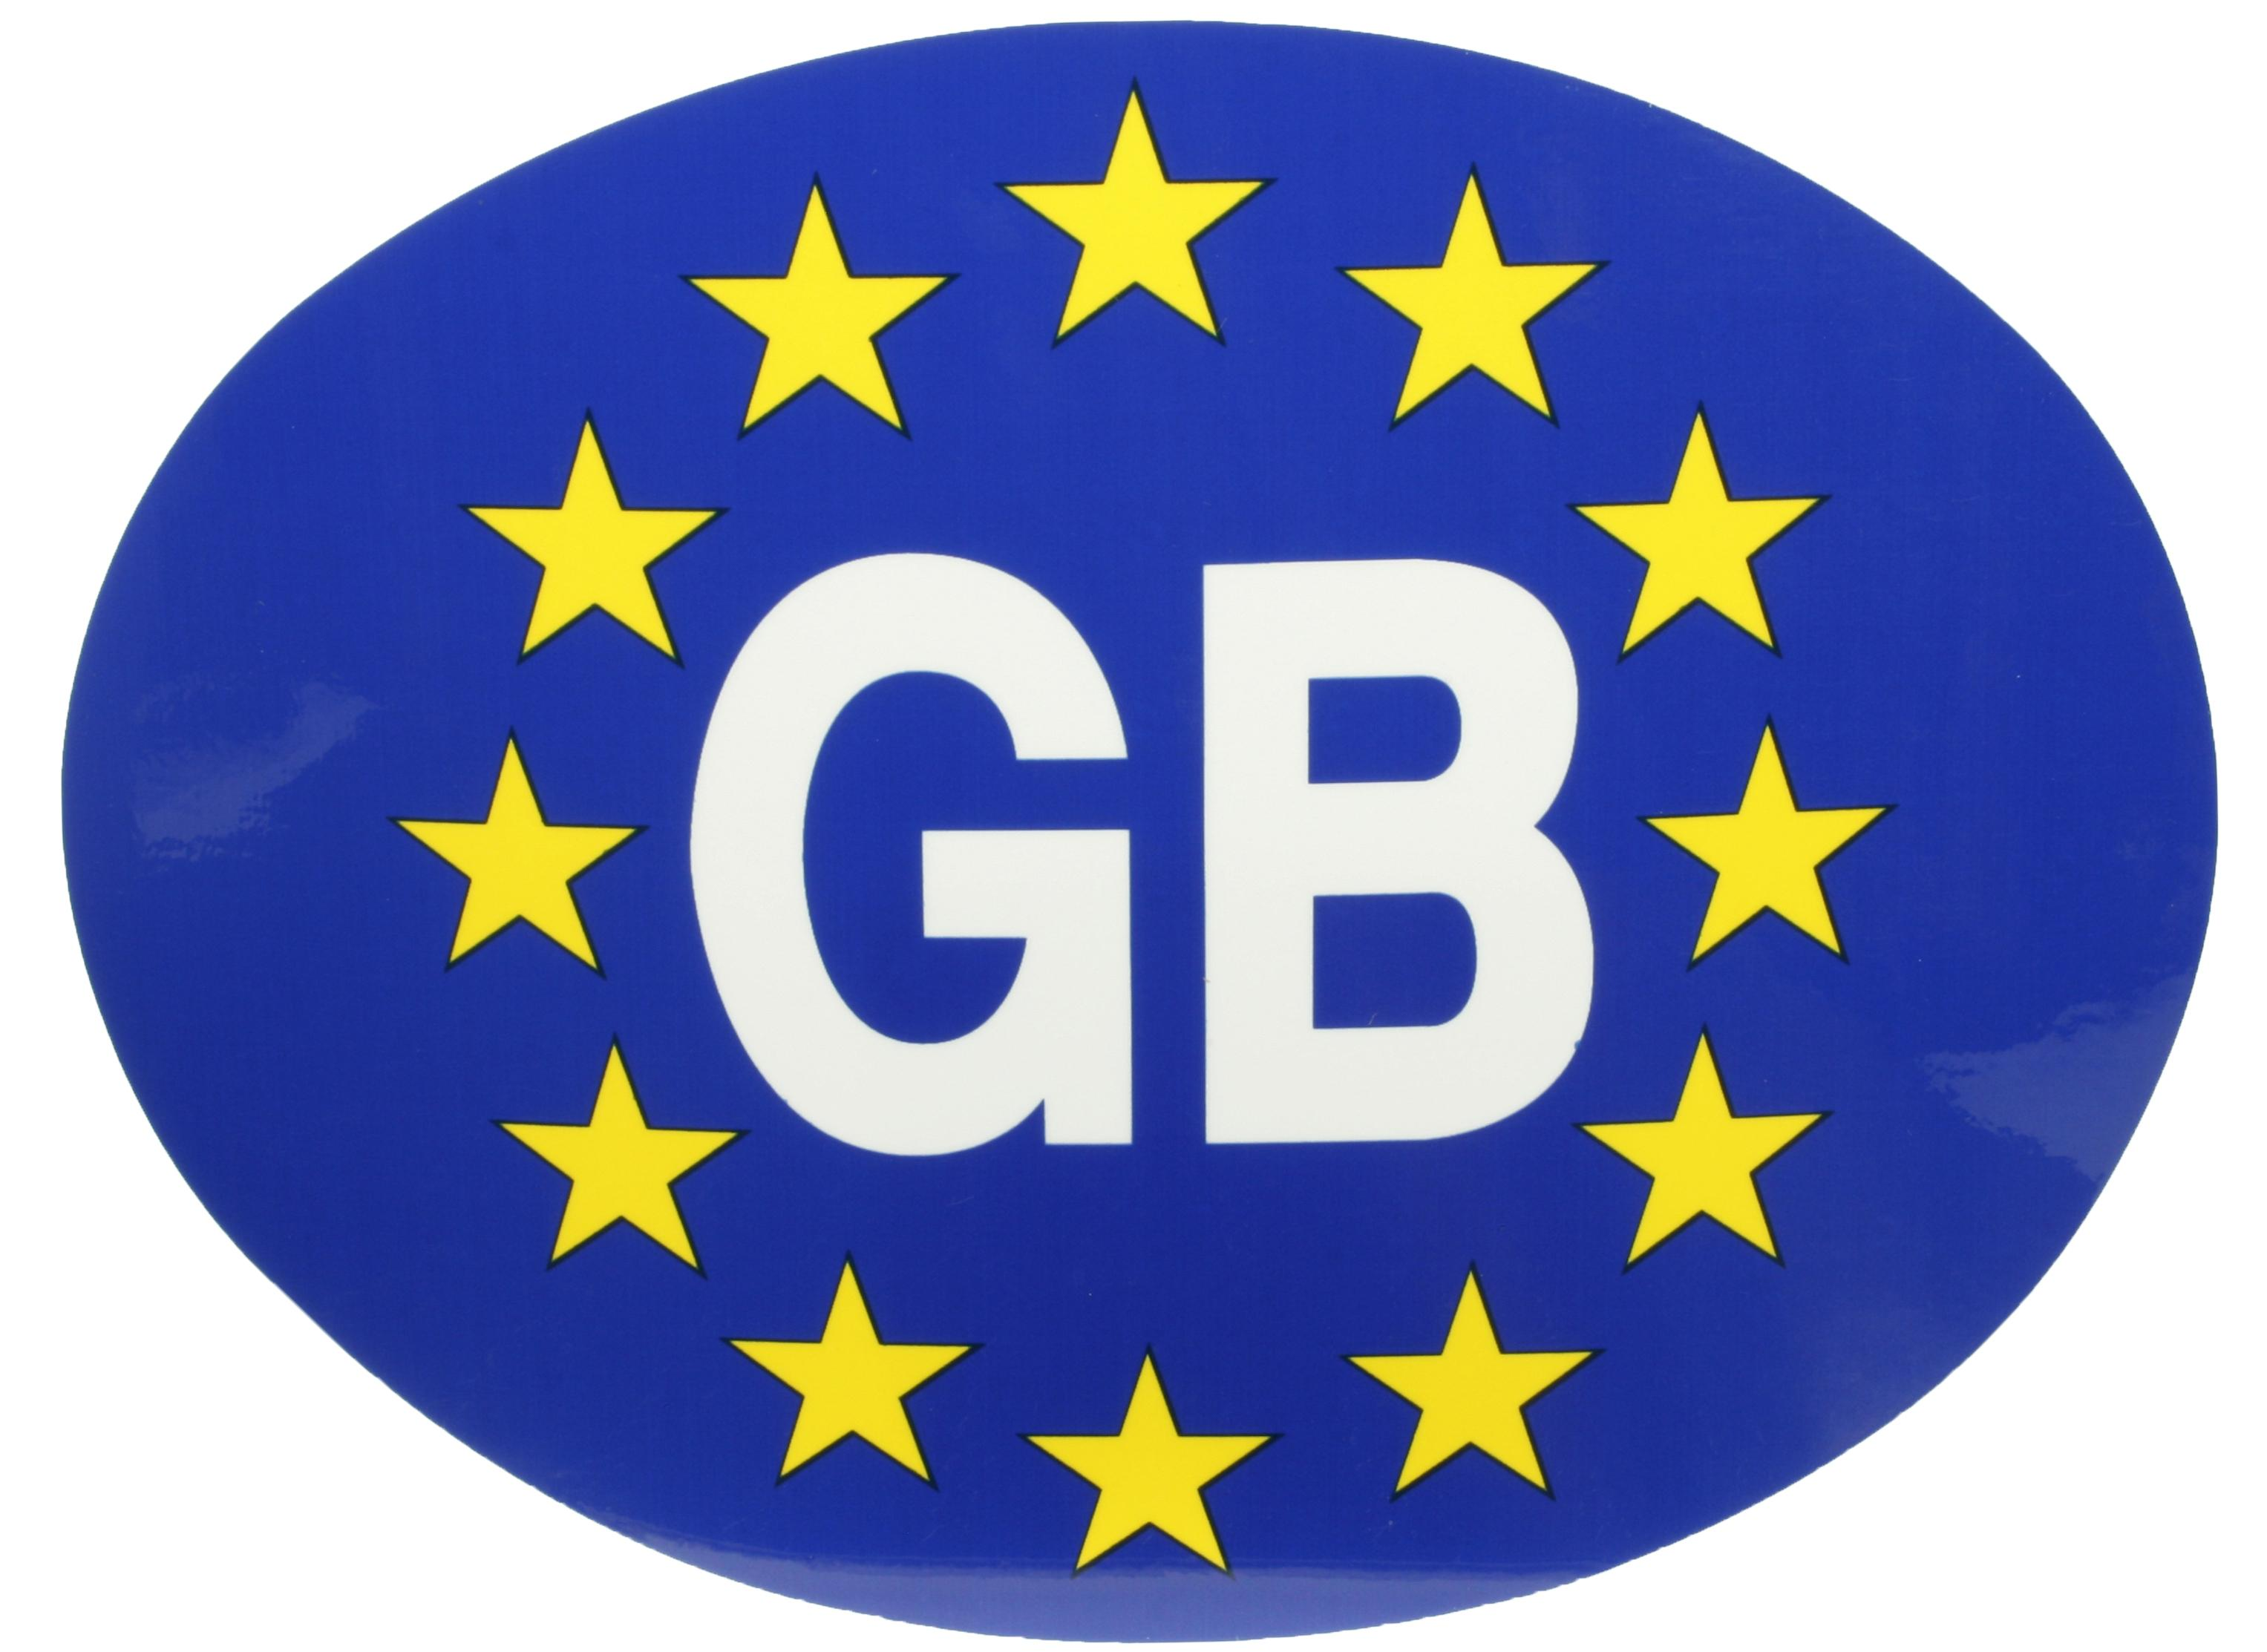 Details About Halfords Gb Great Britain European Car Sticker Oval Self Adhesive Exterior Road